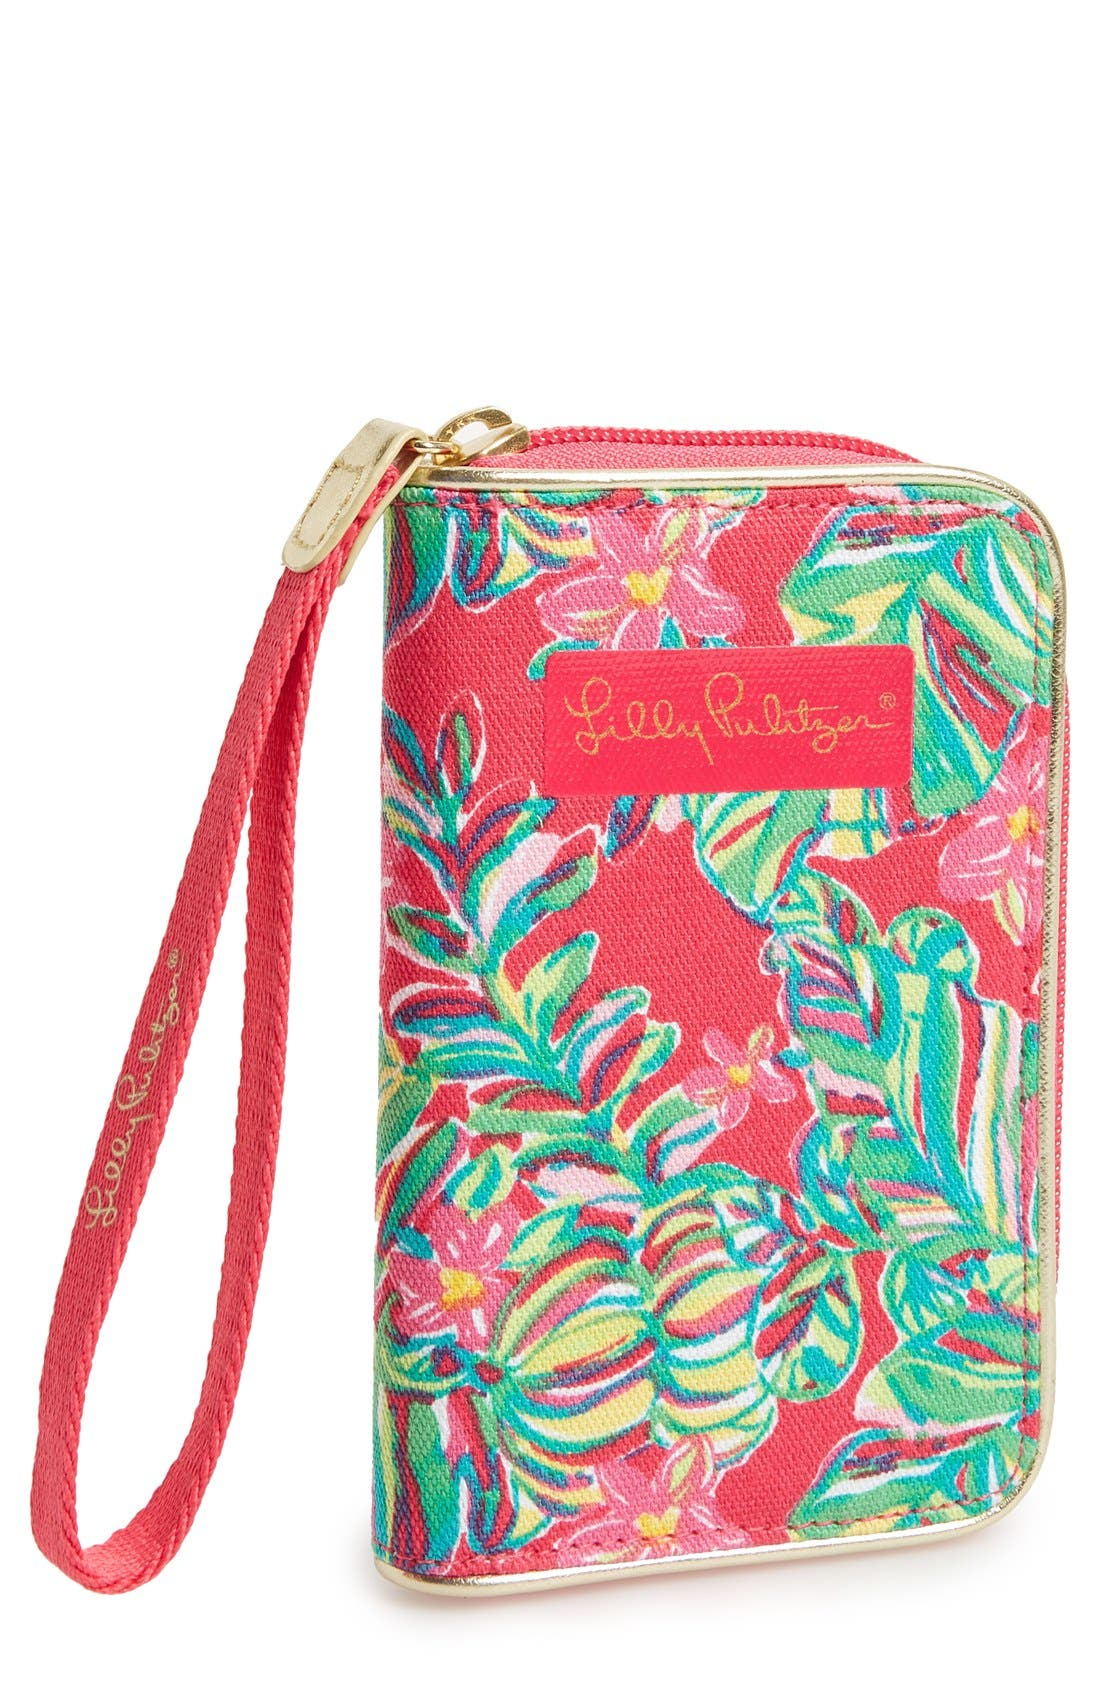 Alternate Image 1 Selected - Lilly Pulitzer® 'Drop Me a Line - Jungle Tumble' Smartphone Wristlet